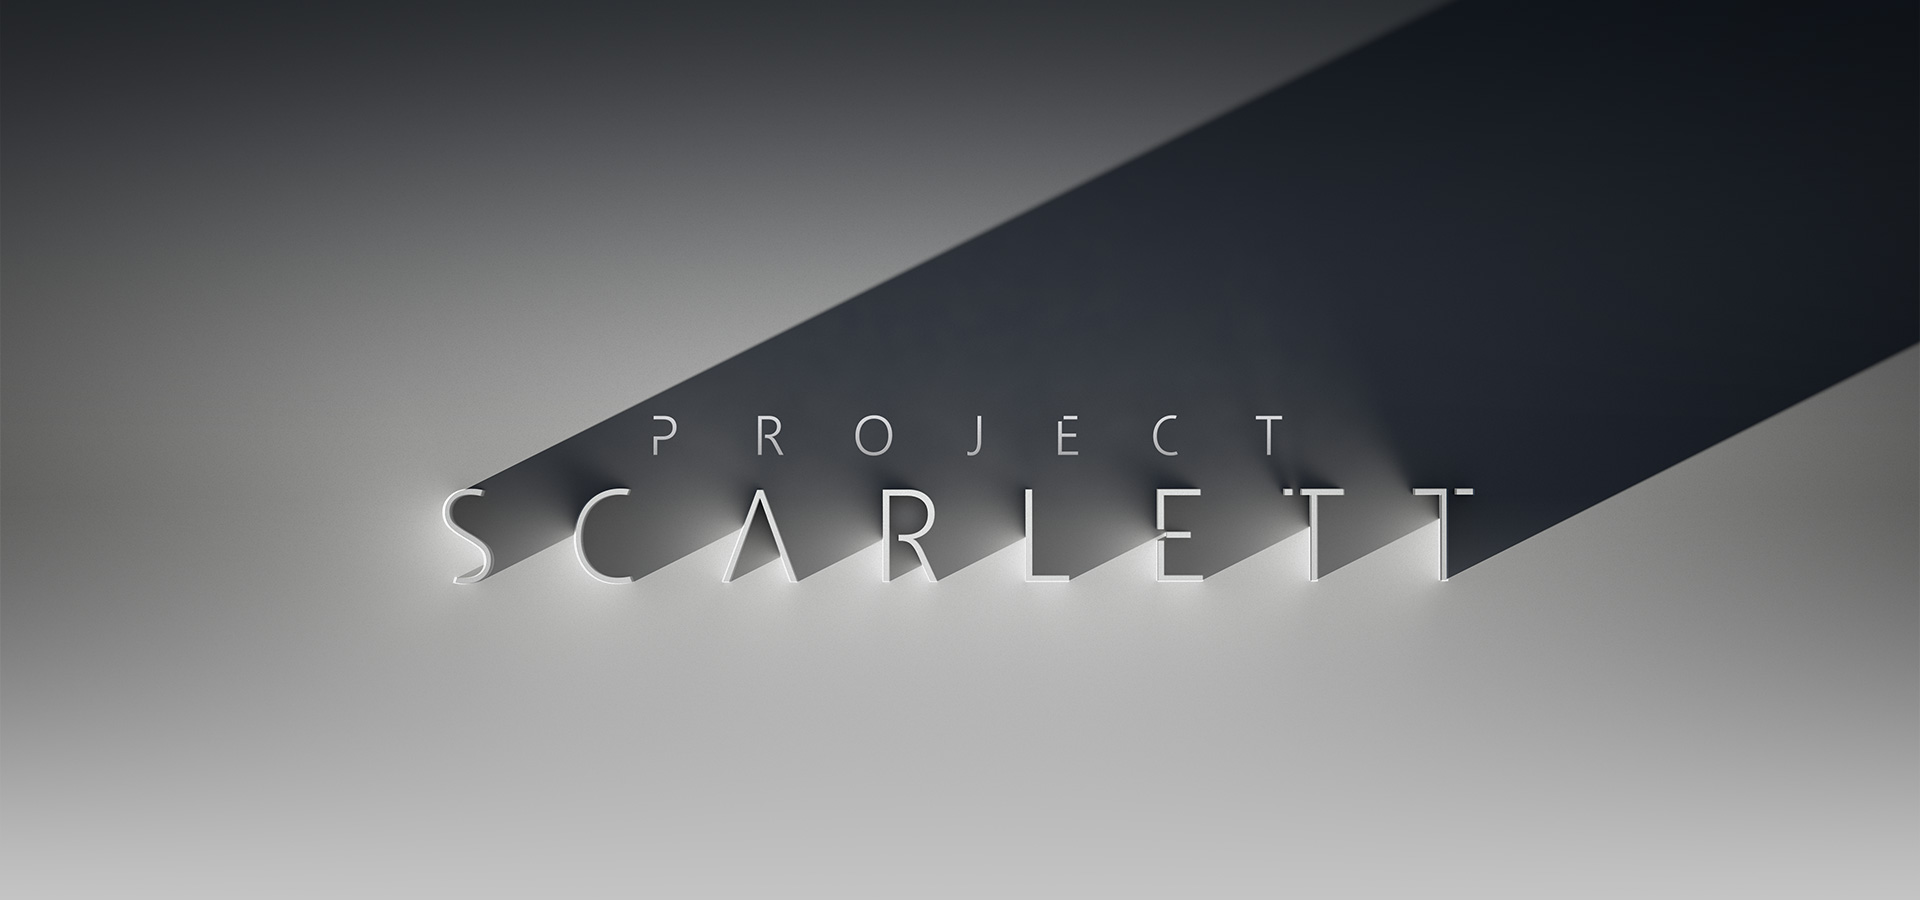 Project Scarlett, stylsed three dimensional lettering cast in shadow